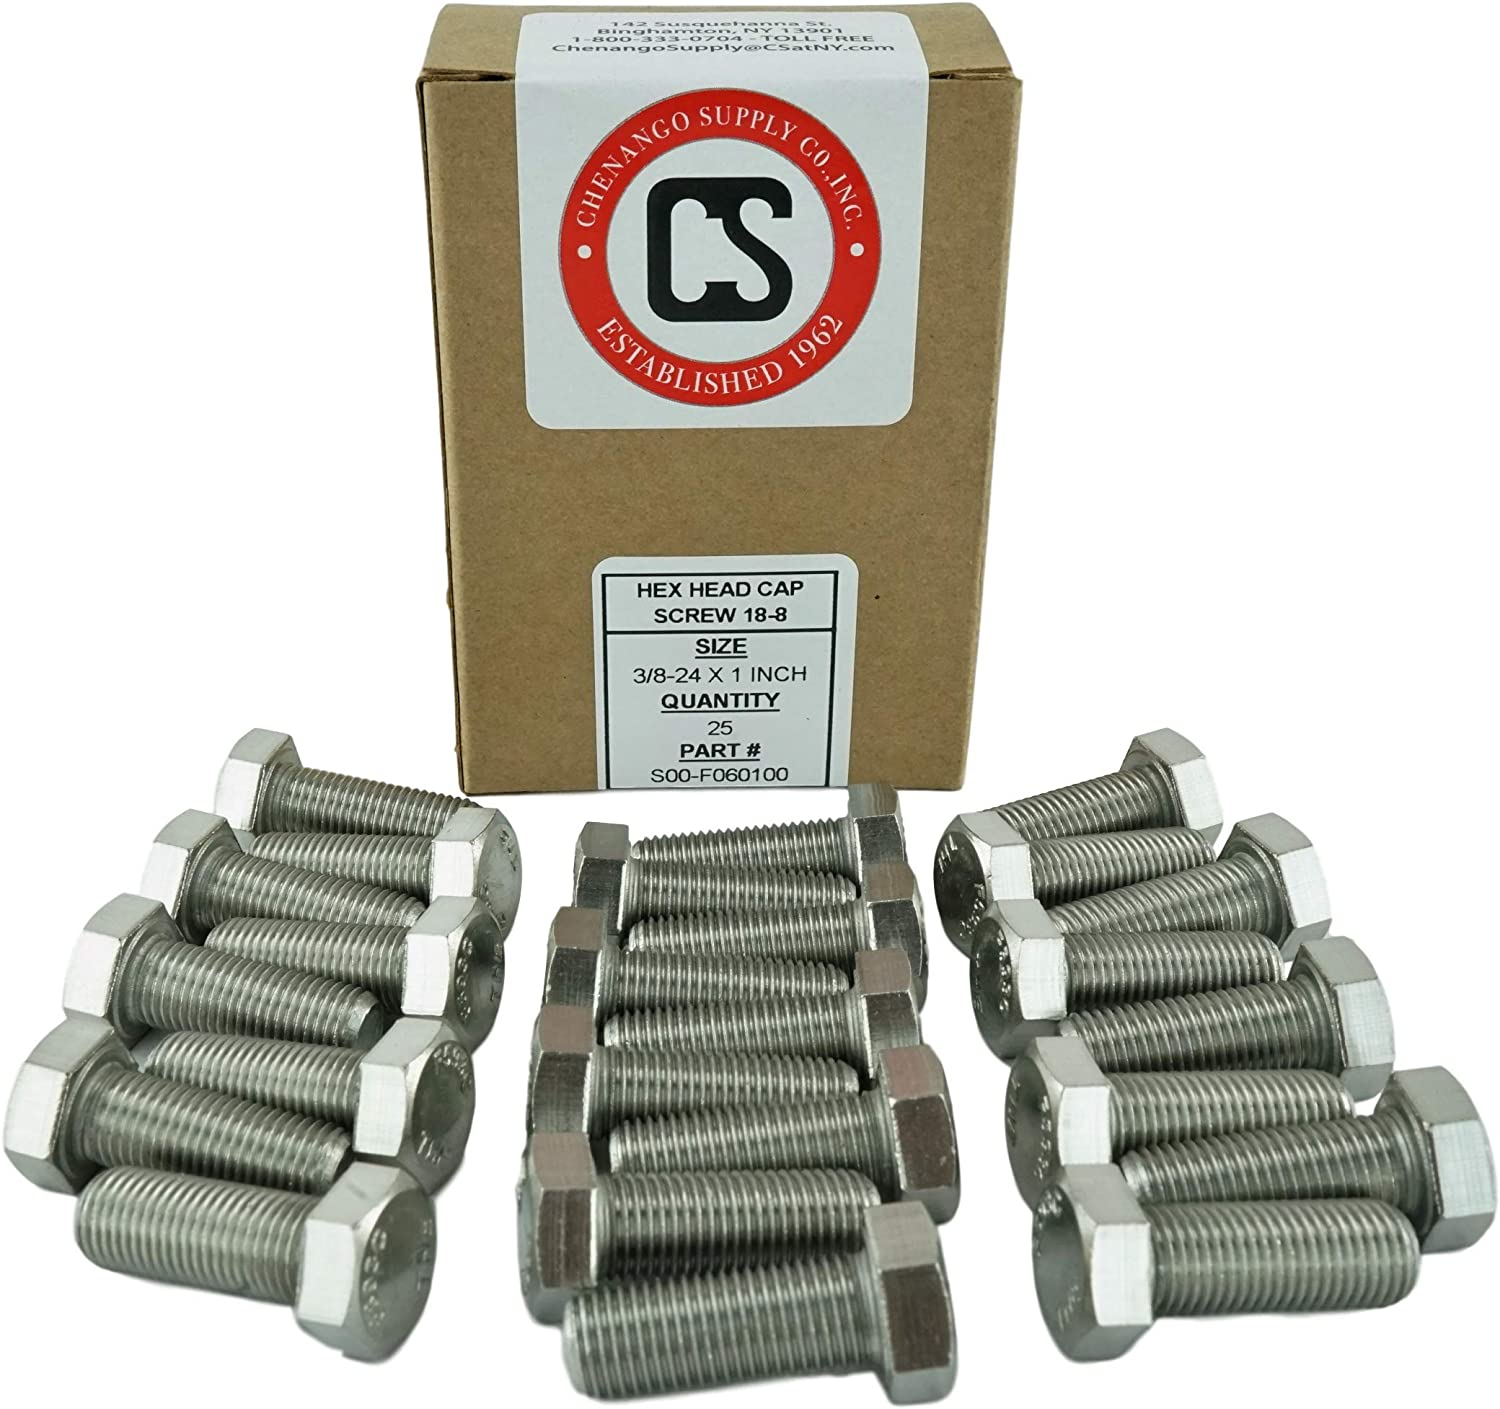 SAE Fine Thread 3//4 to 5 Length in Listing 3//8-24 x 1 304 Stainless Steel Stainless 3//8-24 x 1 Hex Head Bolts 25 Pieces